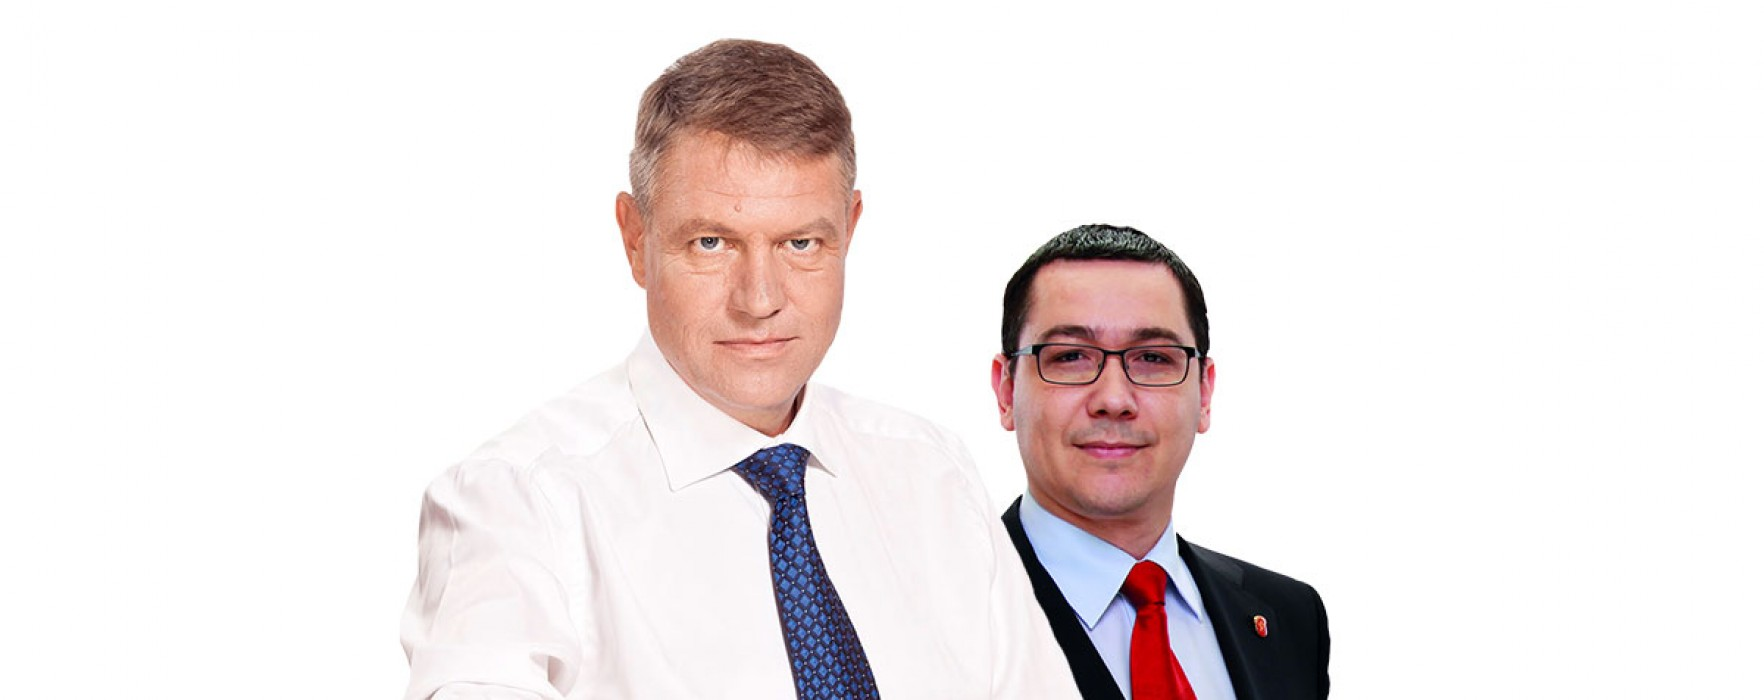 Exit-poll IRES: Klaus Iohannis 50,9 %, Victor Ponta 49,1 %